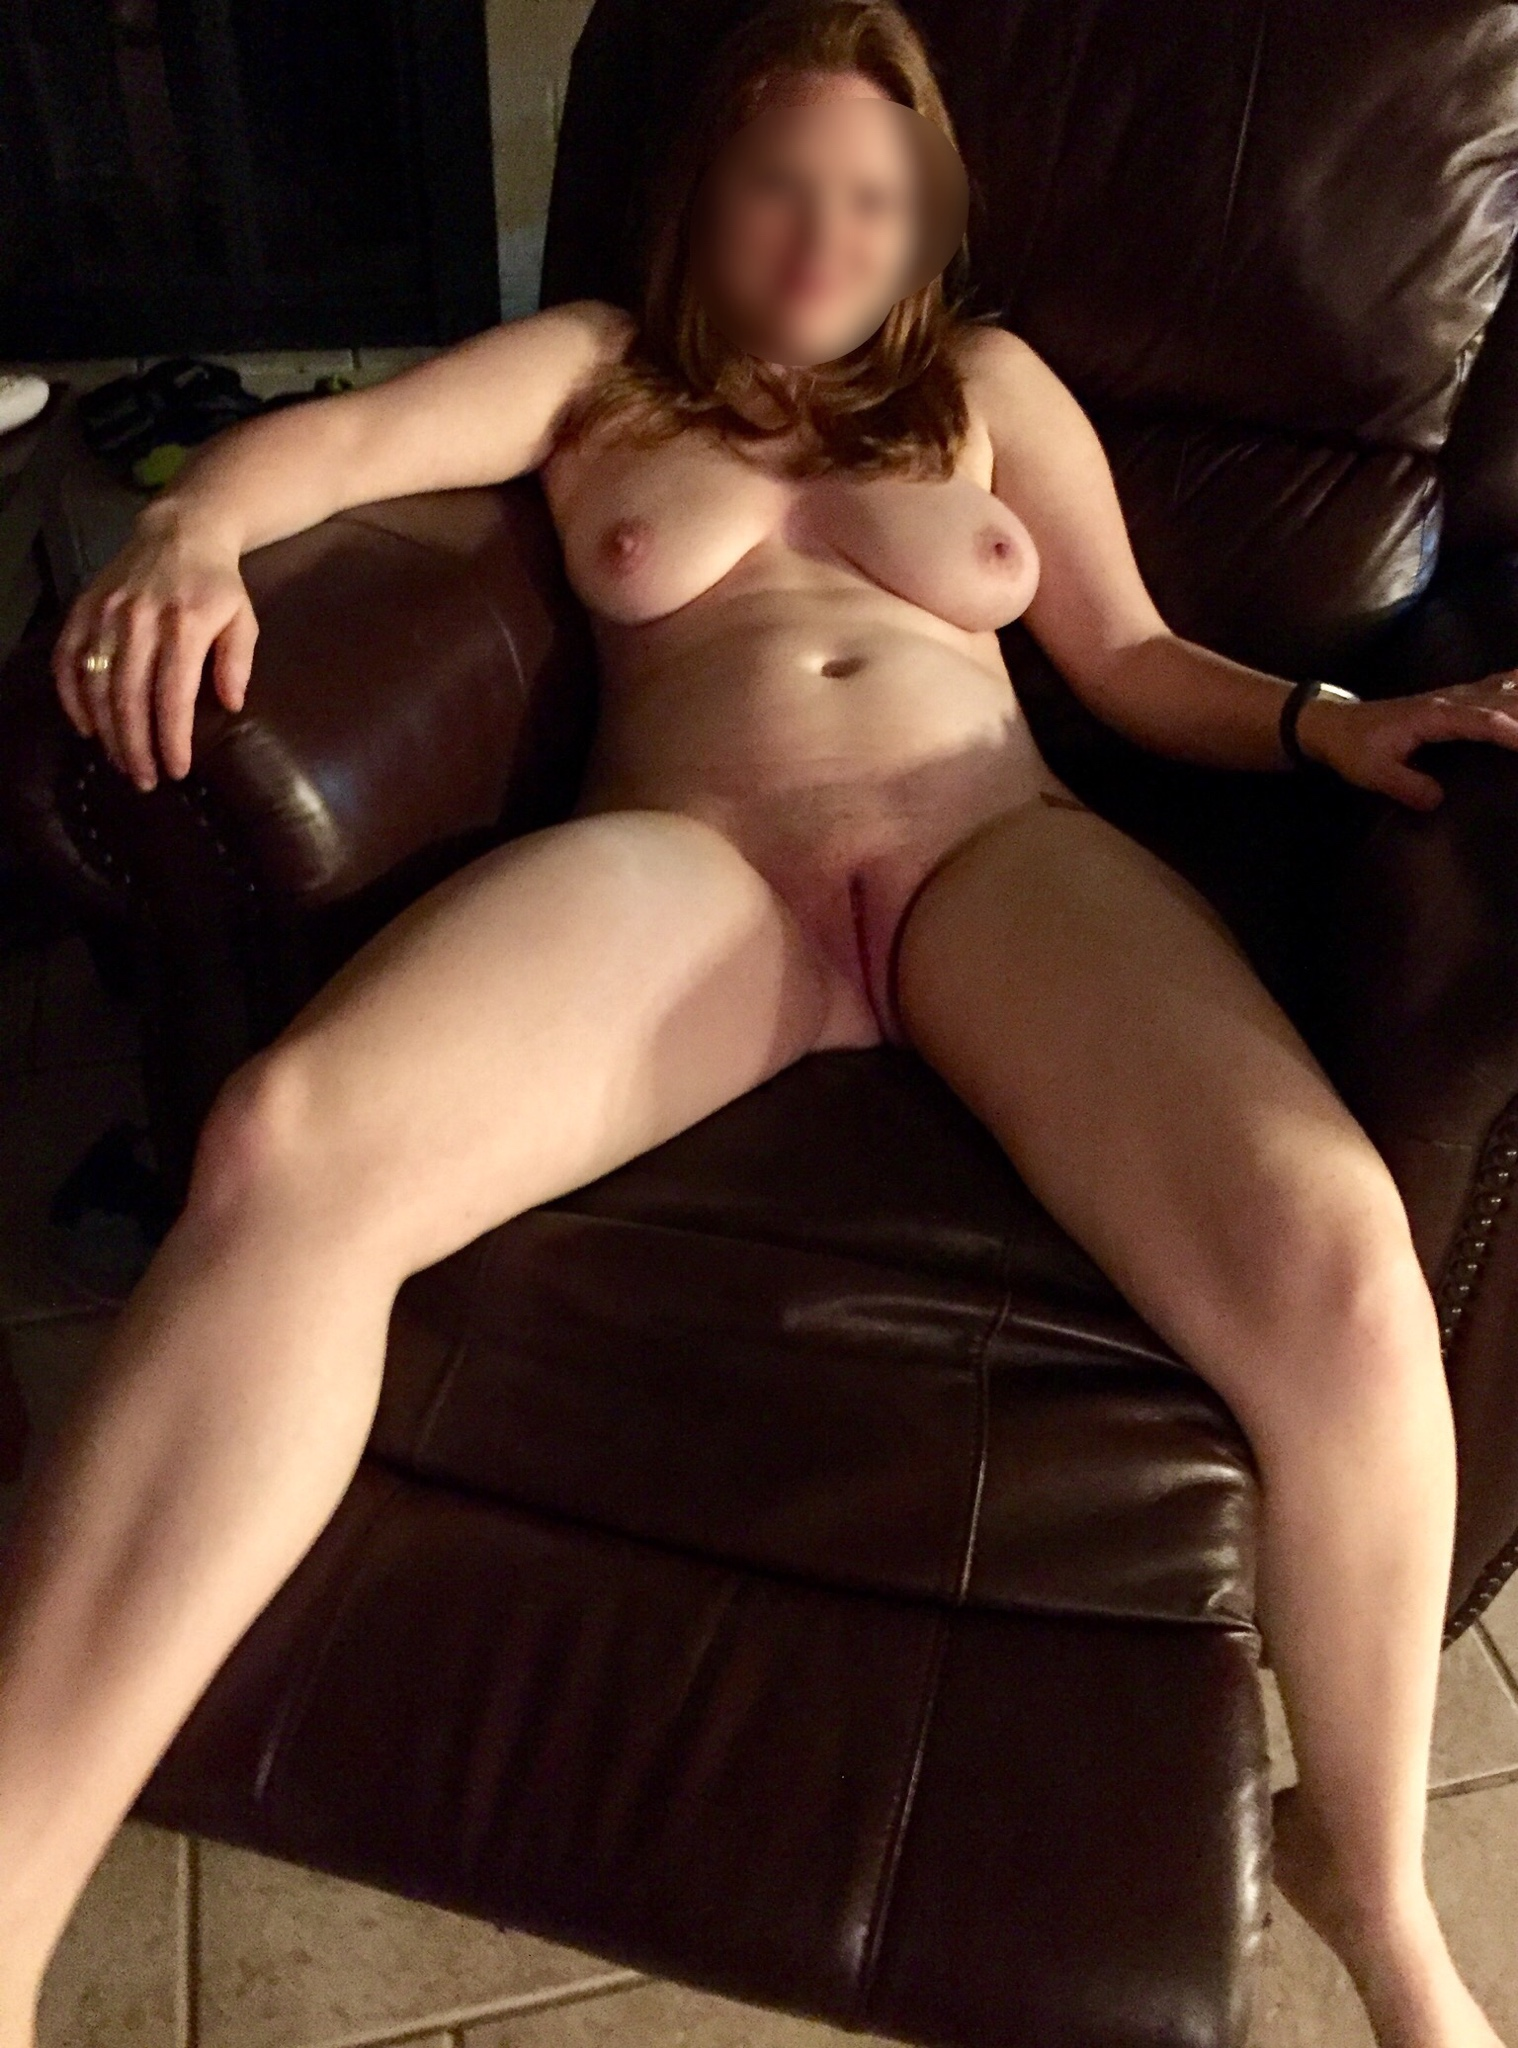 Remarkable, very milf wifes nude house think